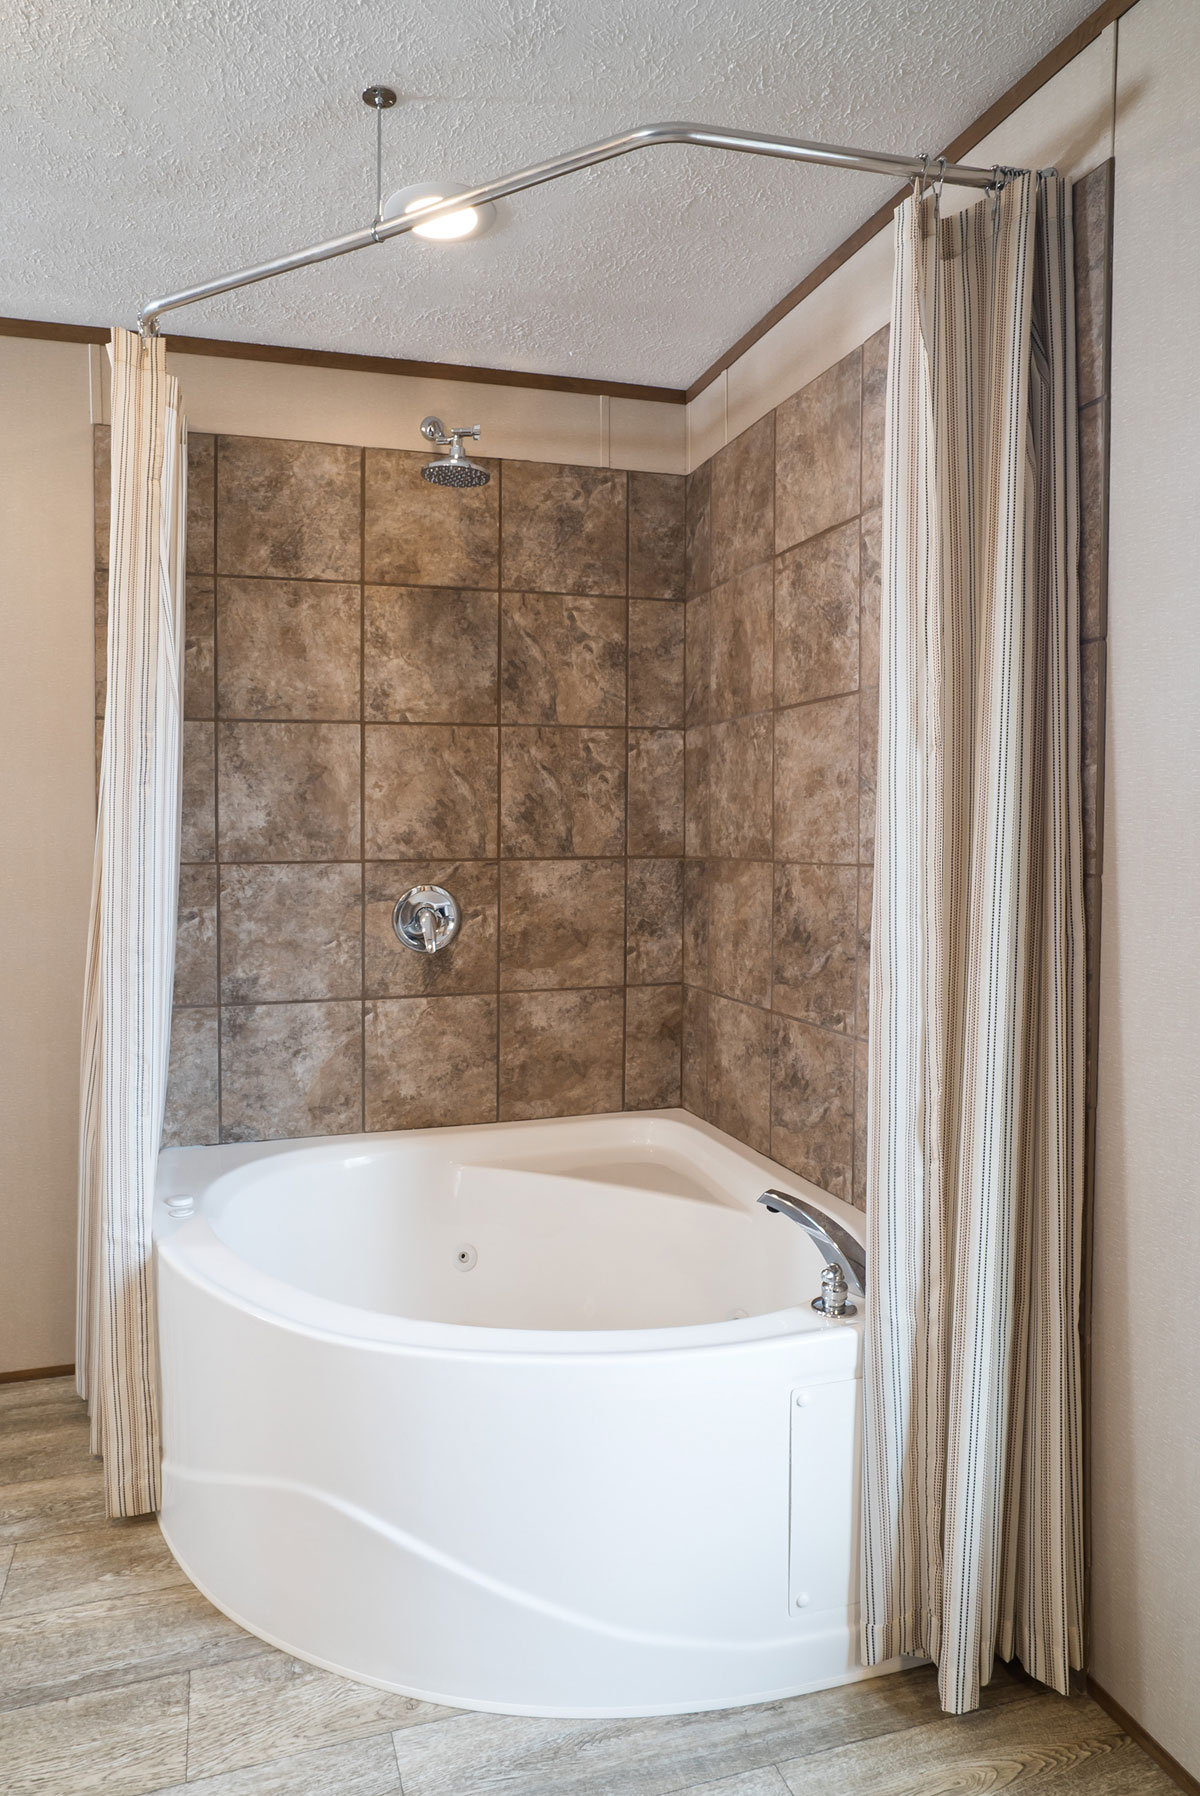 with astounding skirt bathtubs freestanding soaking american tub slipper ended bath alcove standard double idea